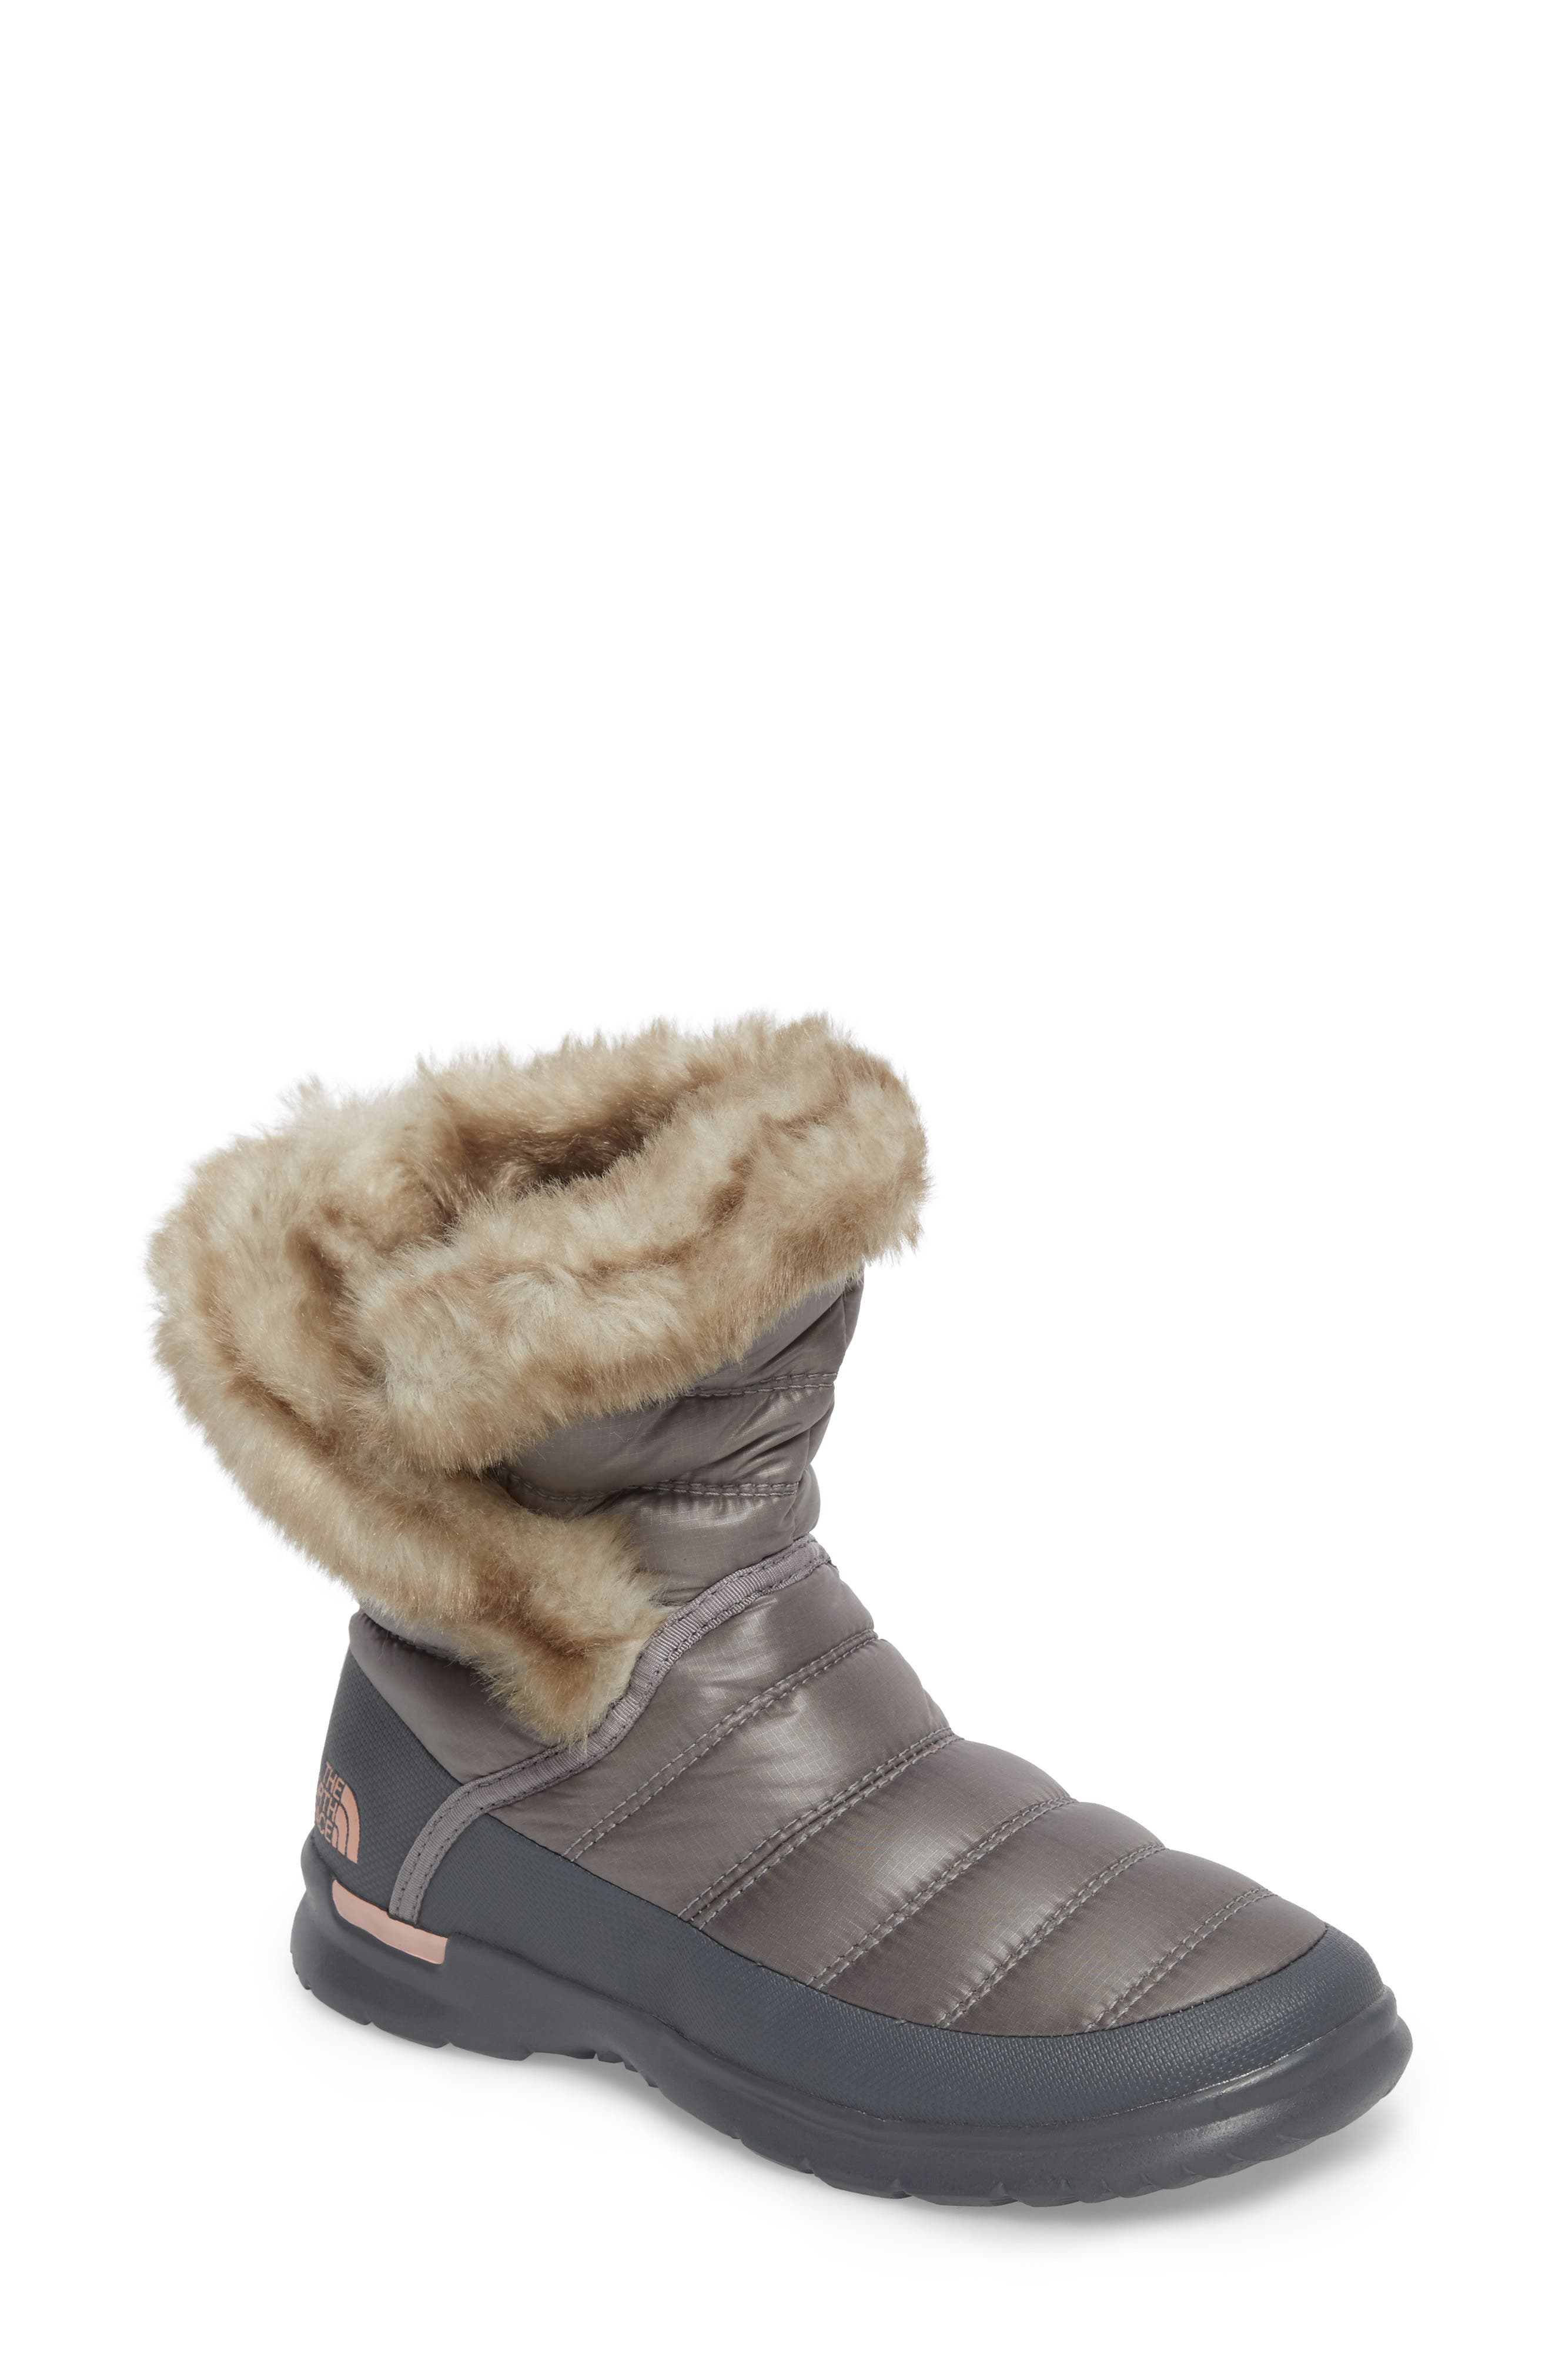 THE NORTH FACE,                             Microbaffle Waterproof ThermoBall<sup>™</sup> Insulated Winter Boot,                             Main thumbnail 1, color,                             021